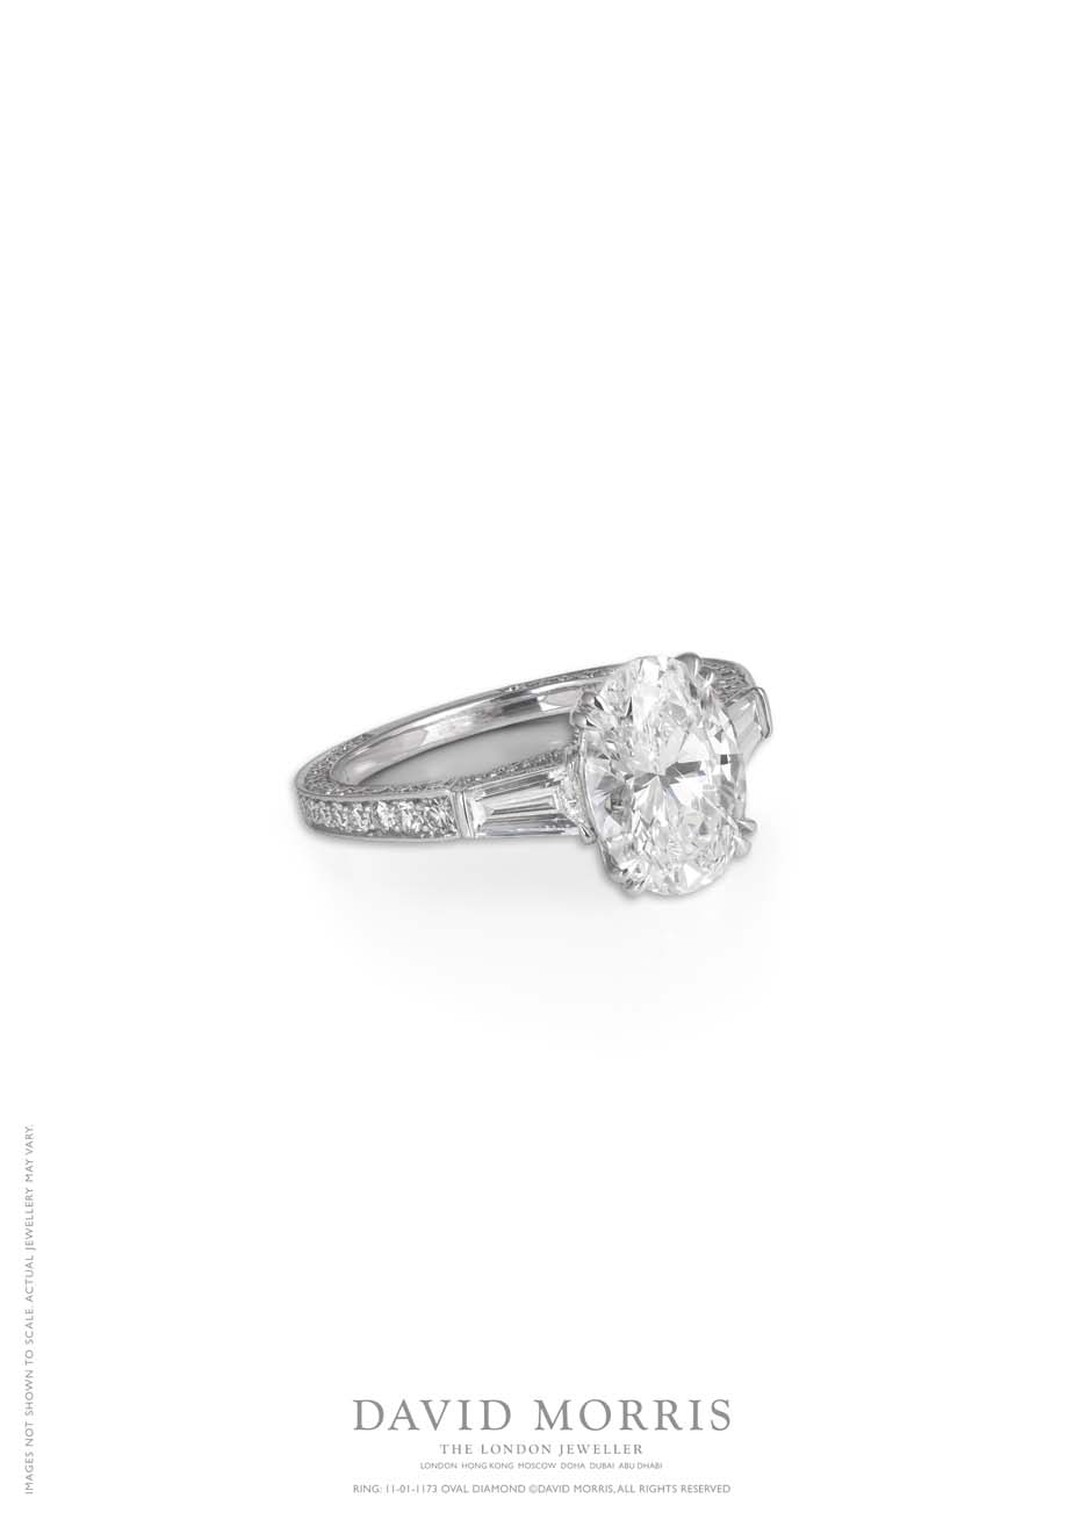 301170 events service, paired with David Morris' oval and baguette-cut diamond ring (£45,000 at davidmorris.com).